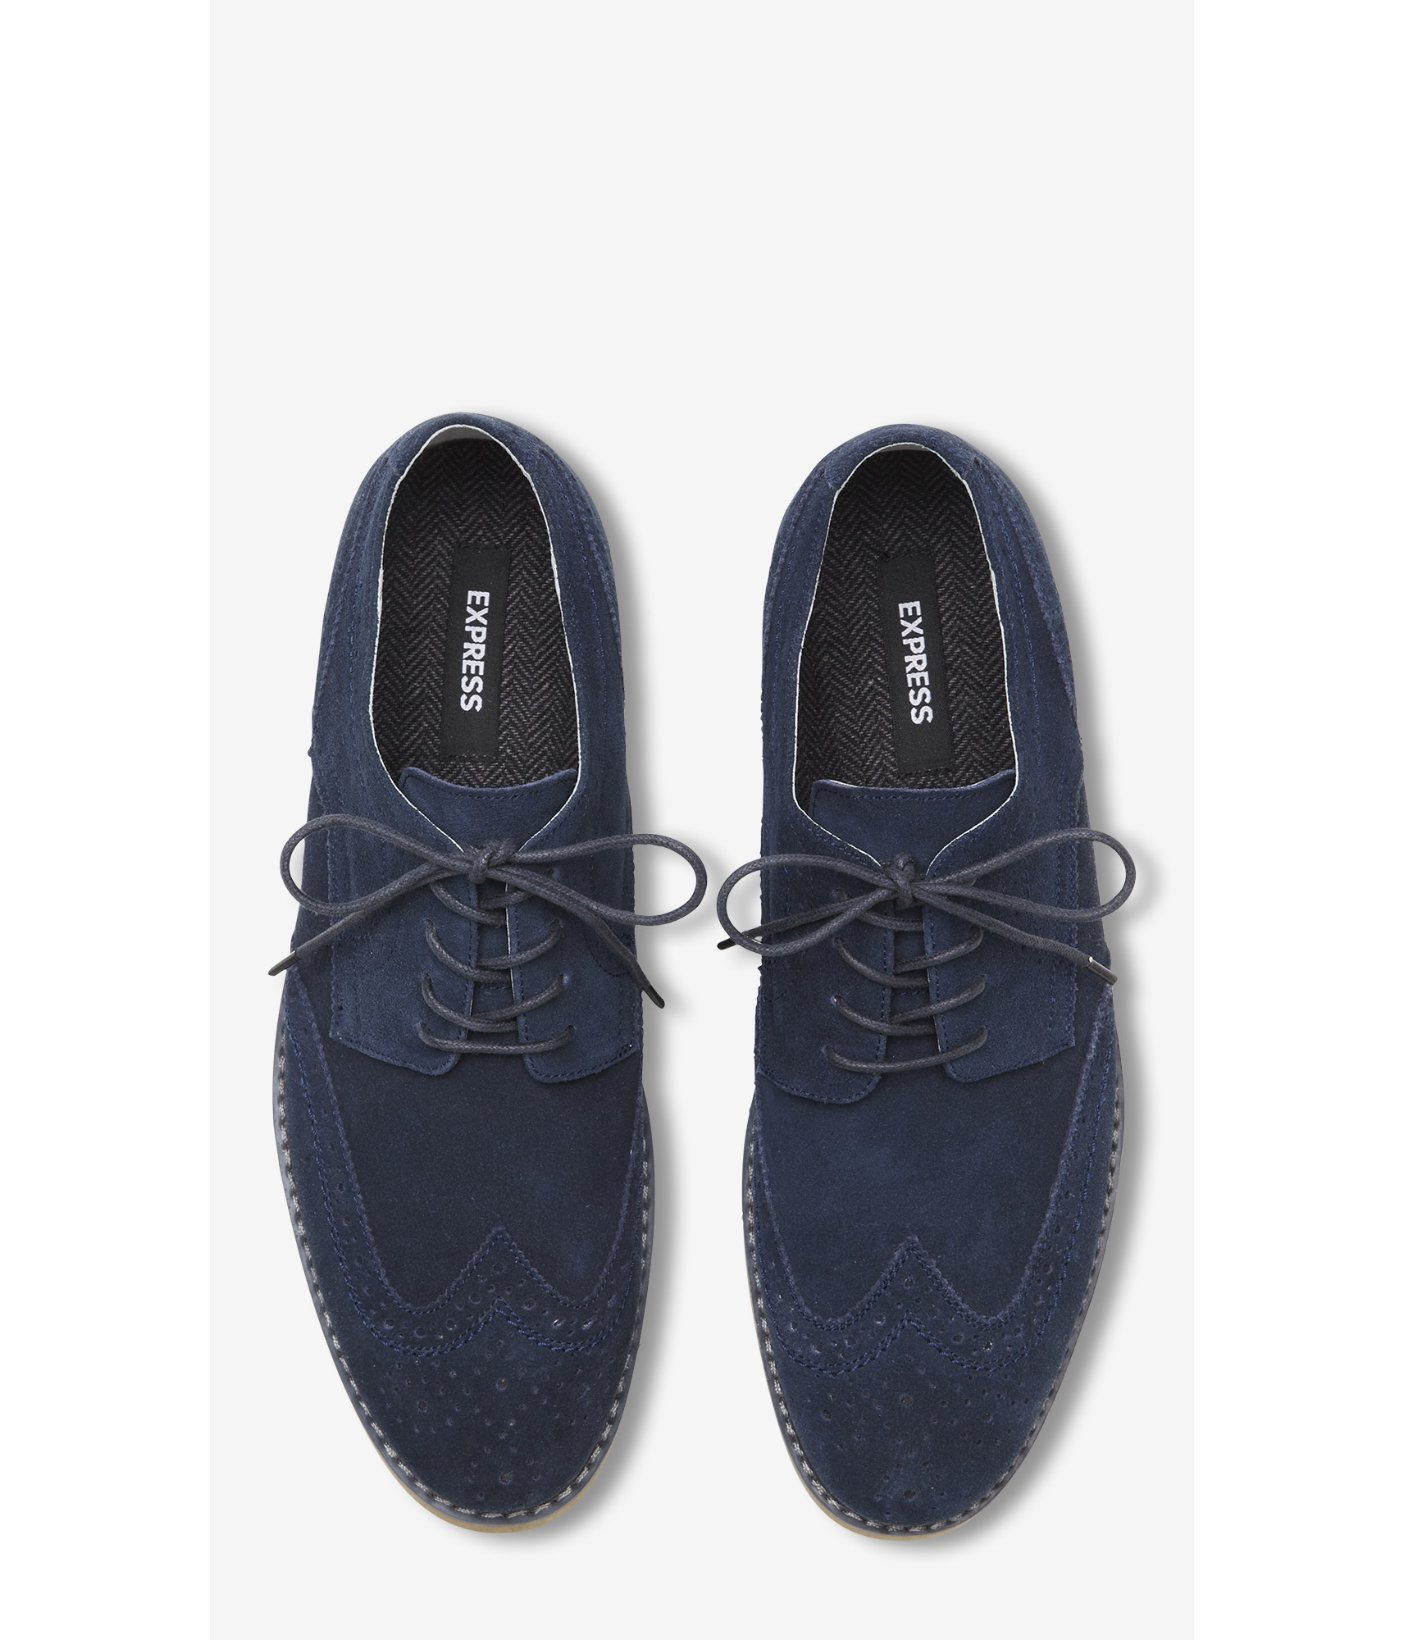 fd491b9baae3a Express Navy Suede Wingtip Oxford in Blue for Men - Lyst